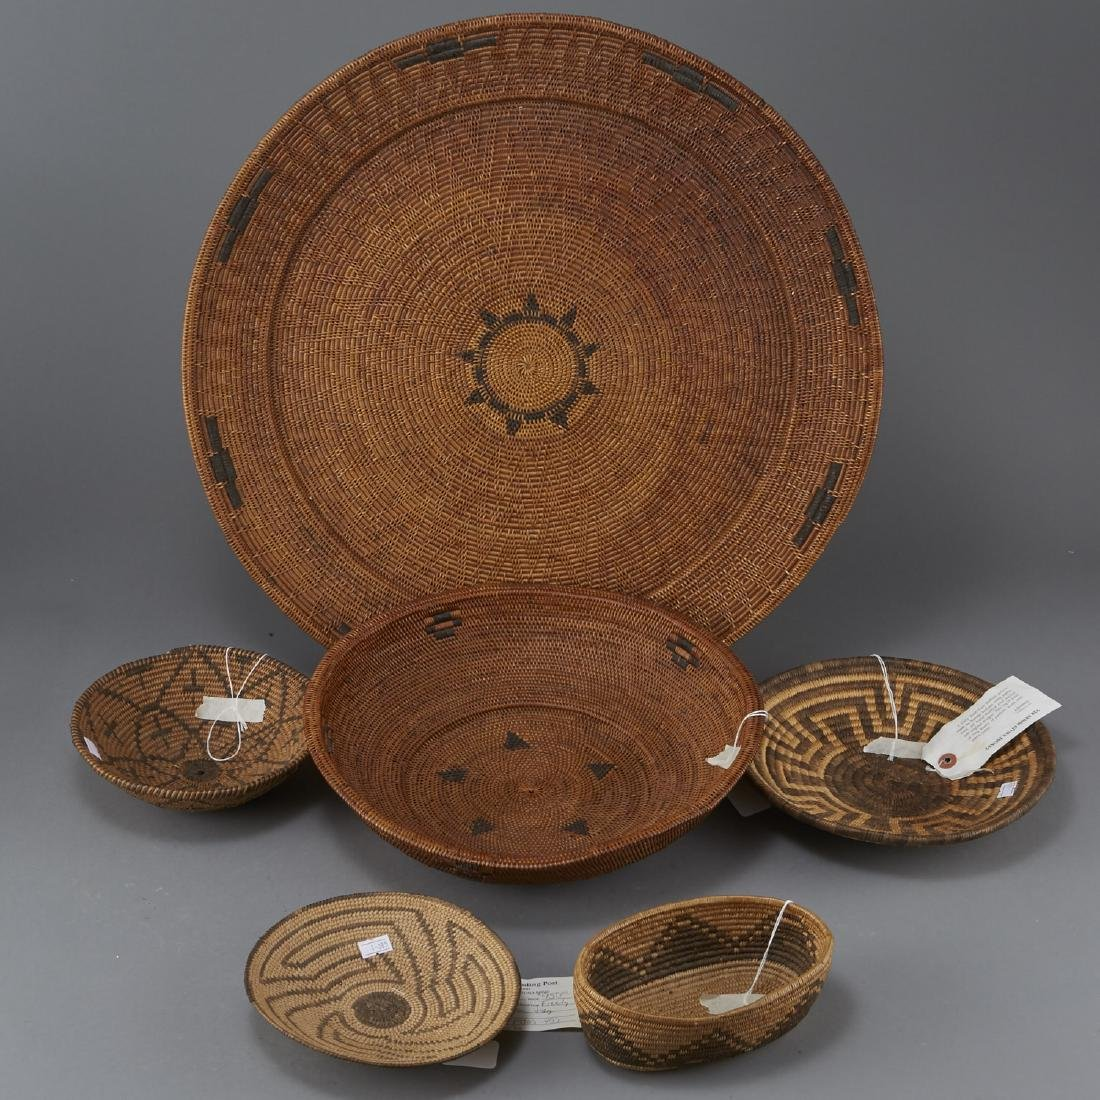 Group of 5 Pima Woven Baskets and Trays